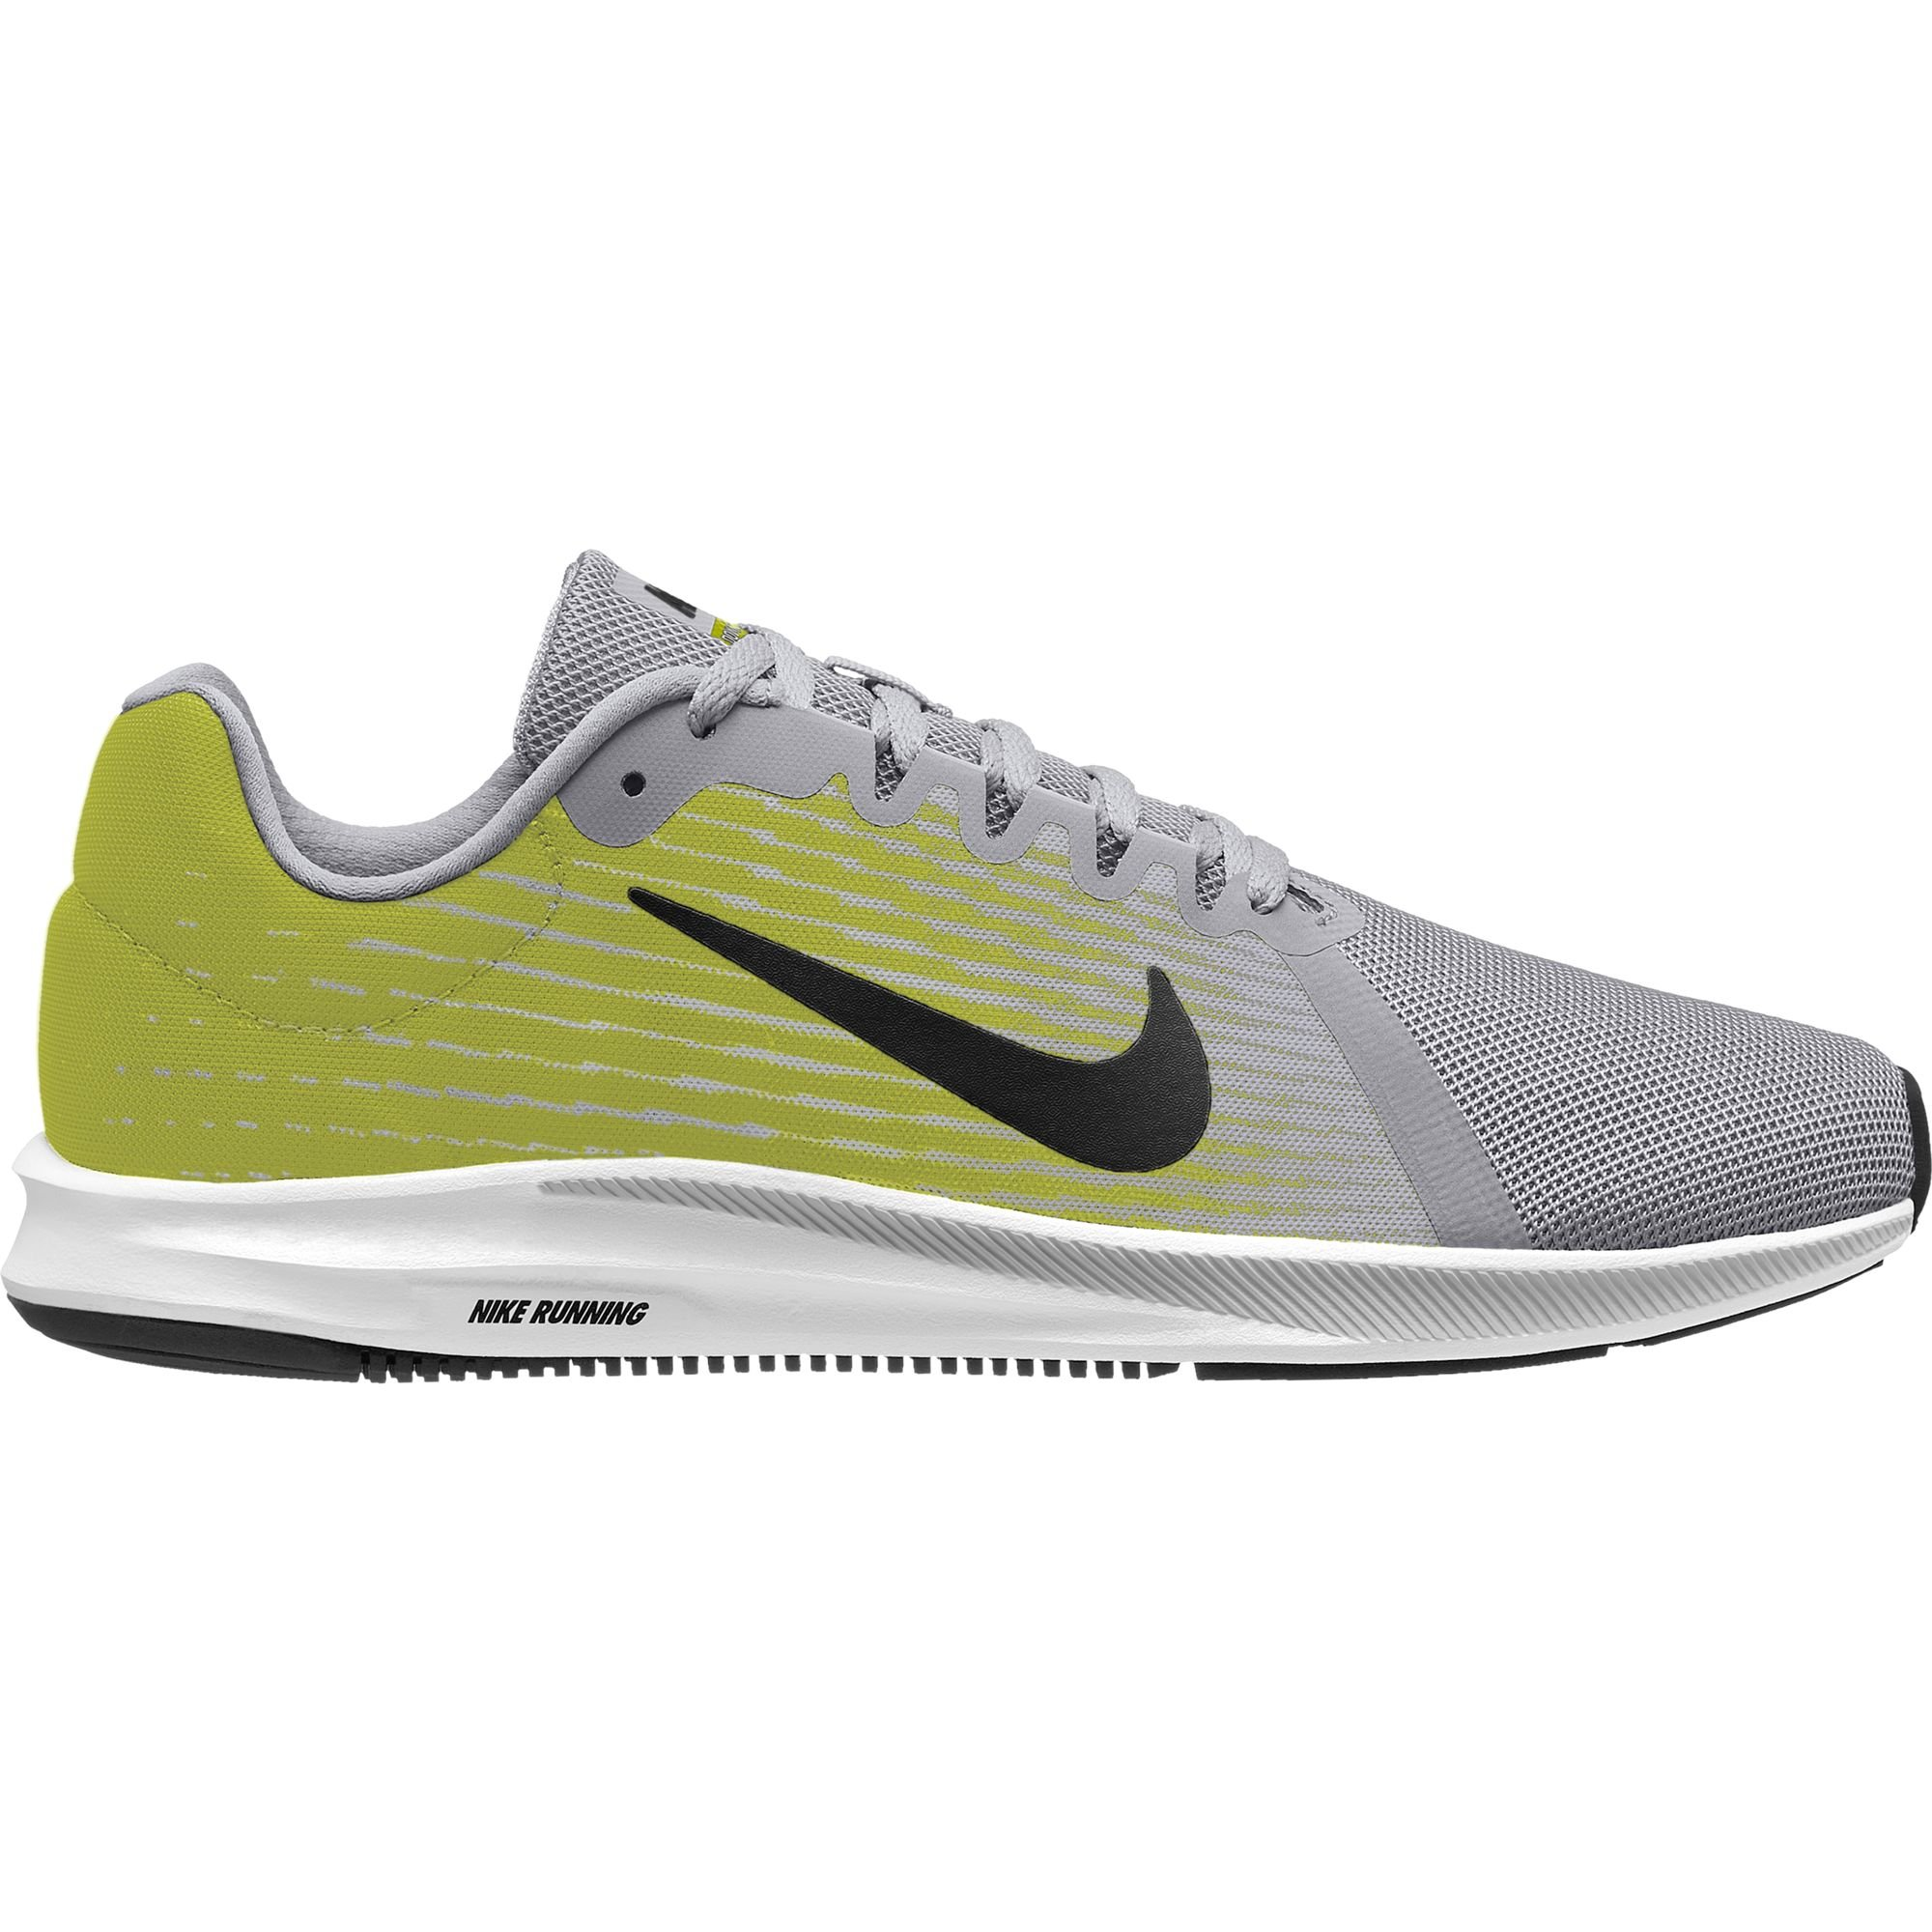 official photos f03ae 9f306 Galleon - Nike Men s Downshifter 8 Running Shoe, Wolf Grey Black-Volt-White,  9